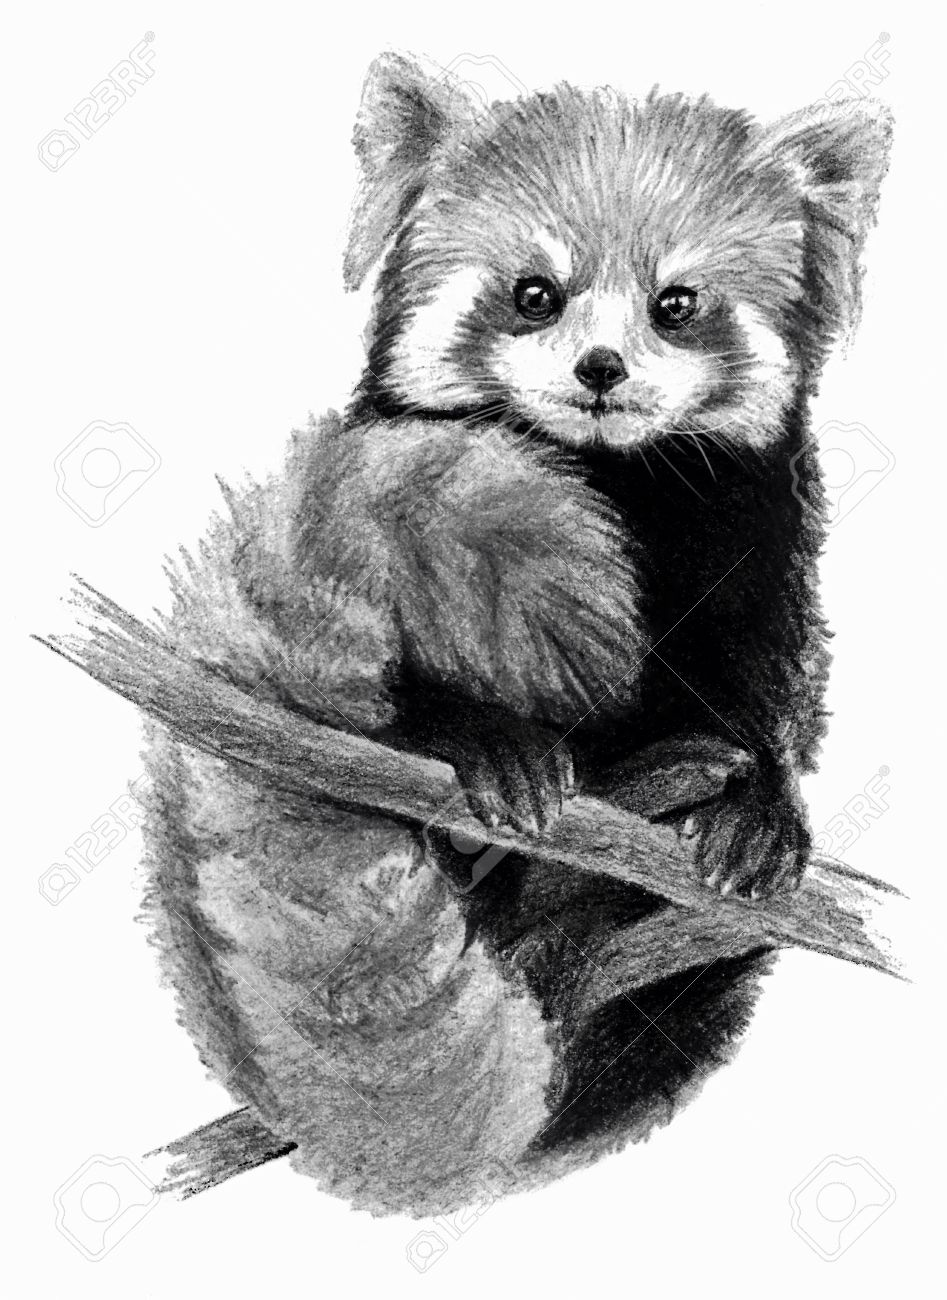 Sketch red panda on the tree on white background detailed pencil drawing